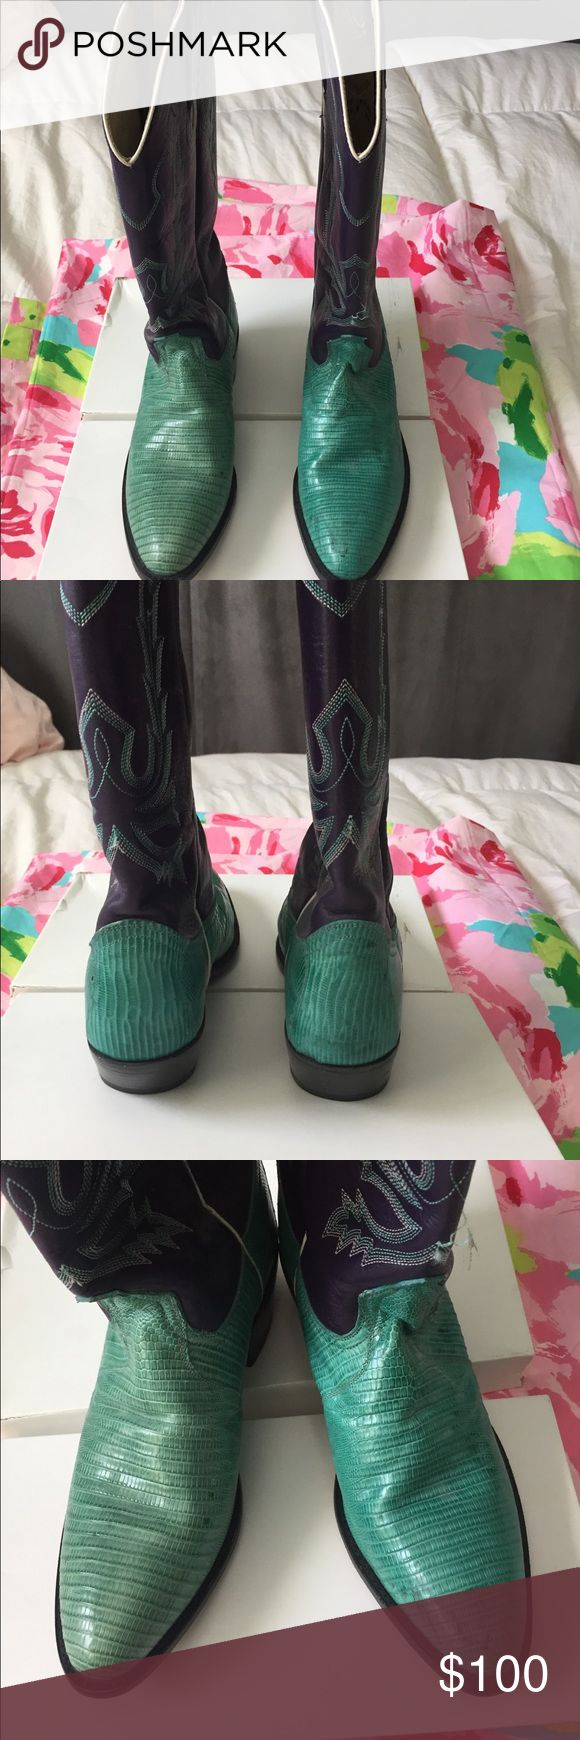 Dan Post women's cowboy boots Genuine lizard  and leather boots purple and green. One boot seems to be a shade lighter hardly worn comfortable Dan Post Shoes Heeled Boots